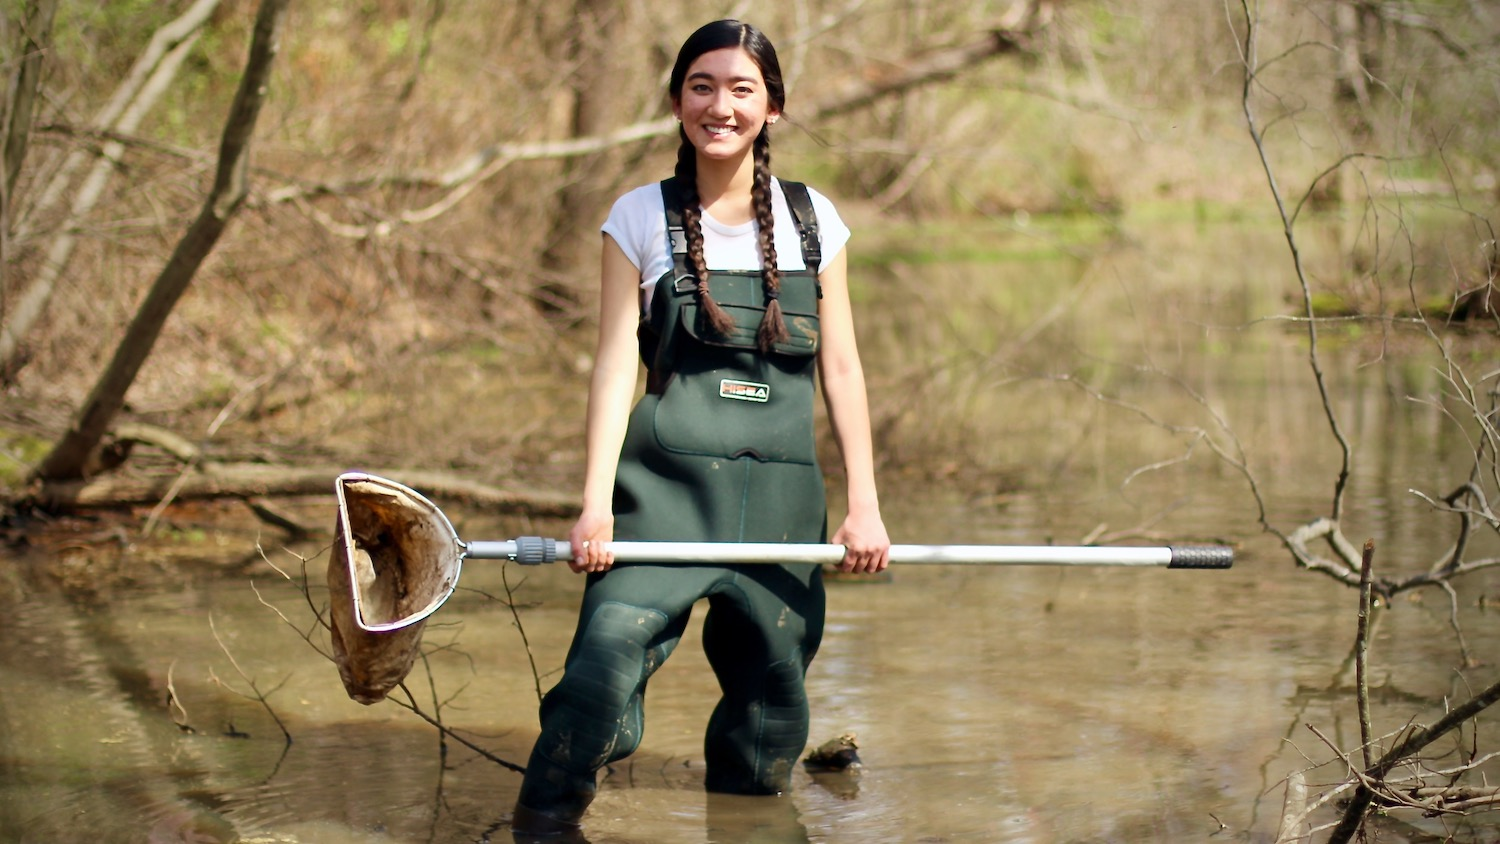 A young woman wearing waters stands in a pond holding a net.